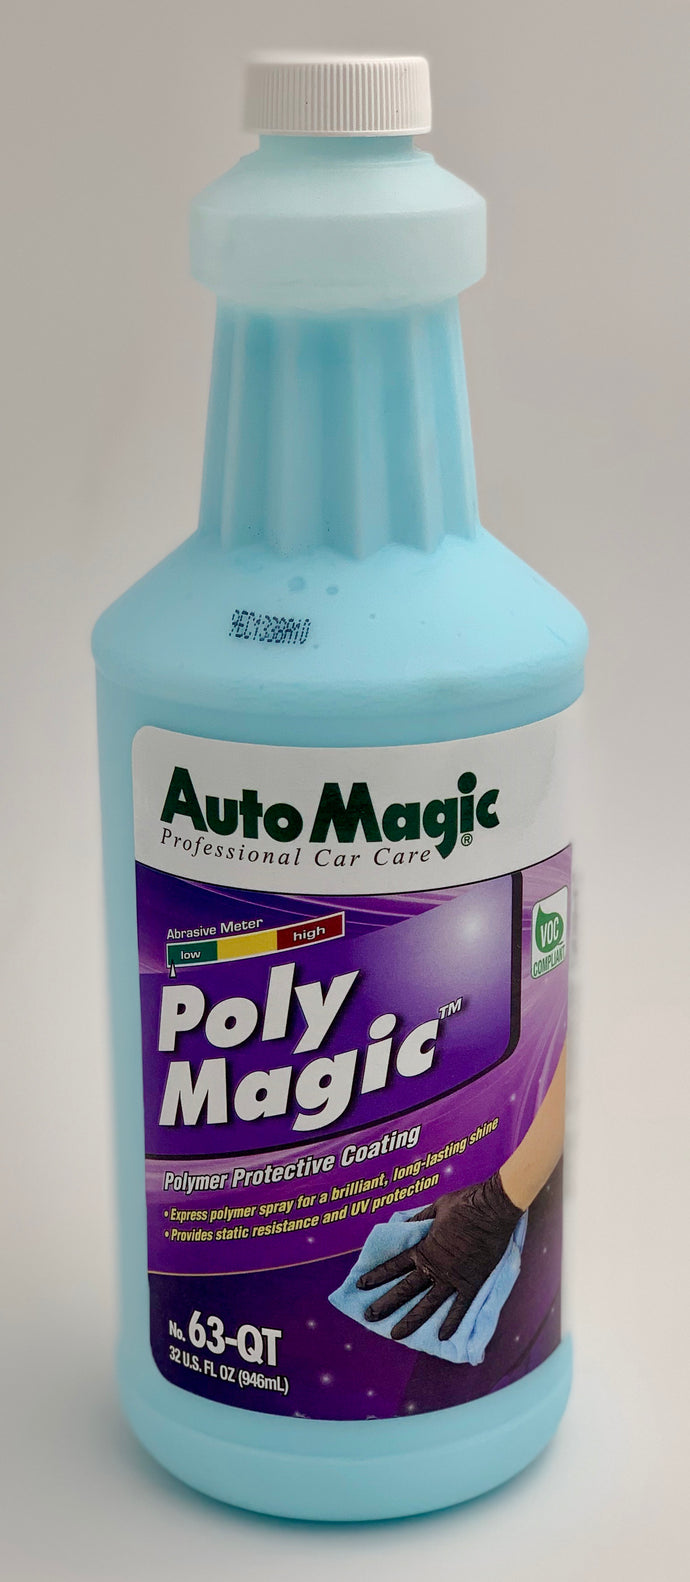 AutoMagic Poly Magic Polymer Protective Coating 32oz